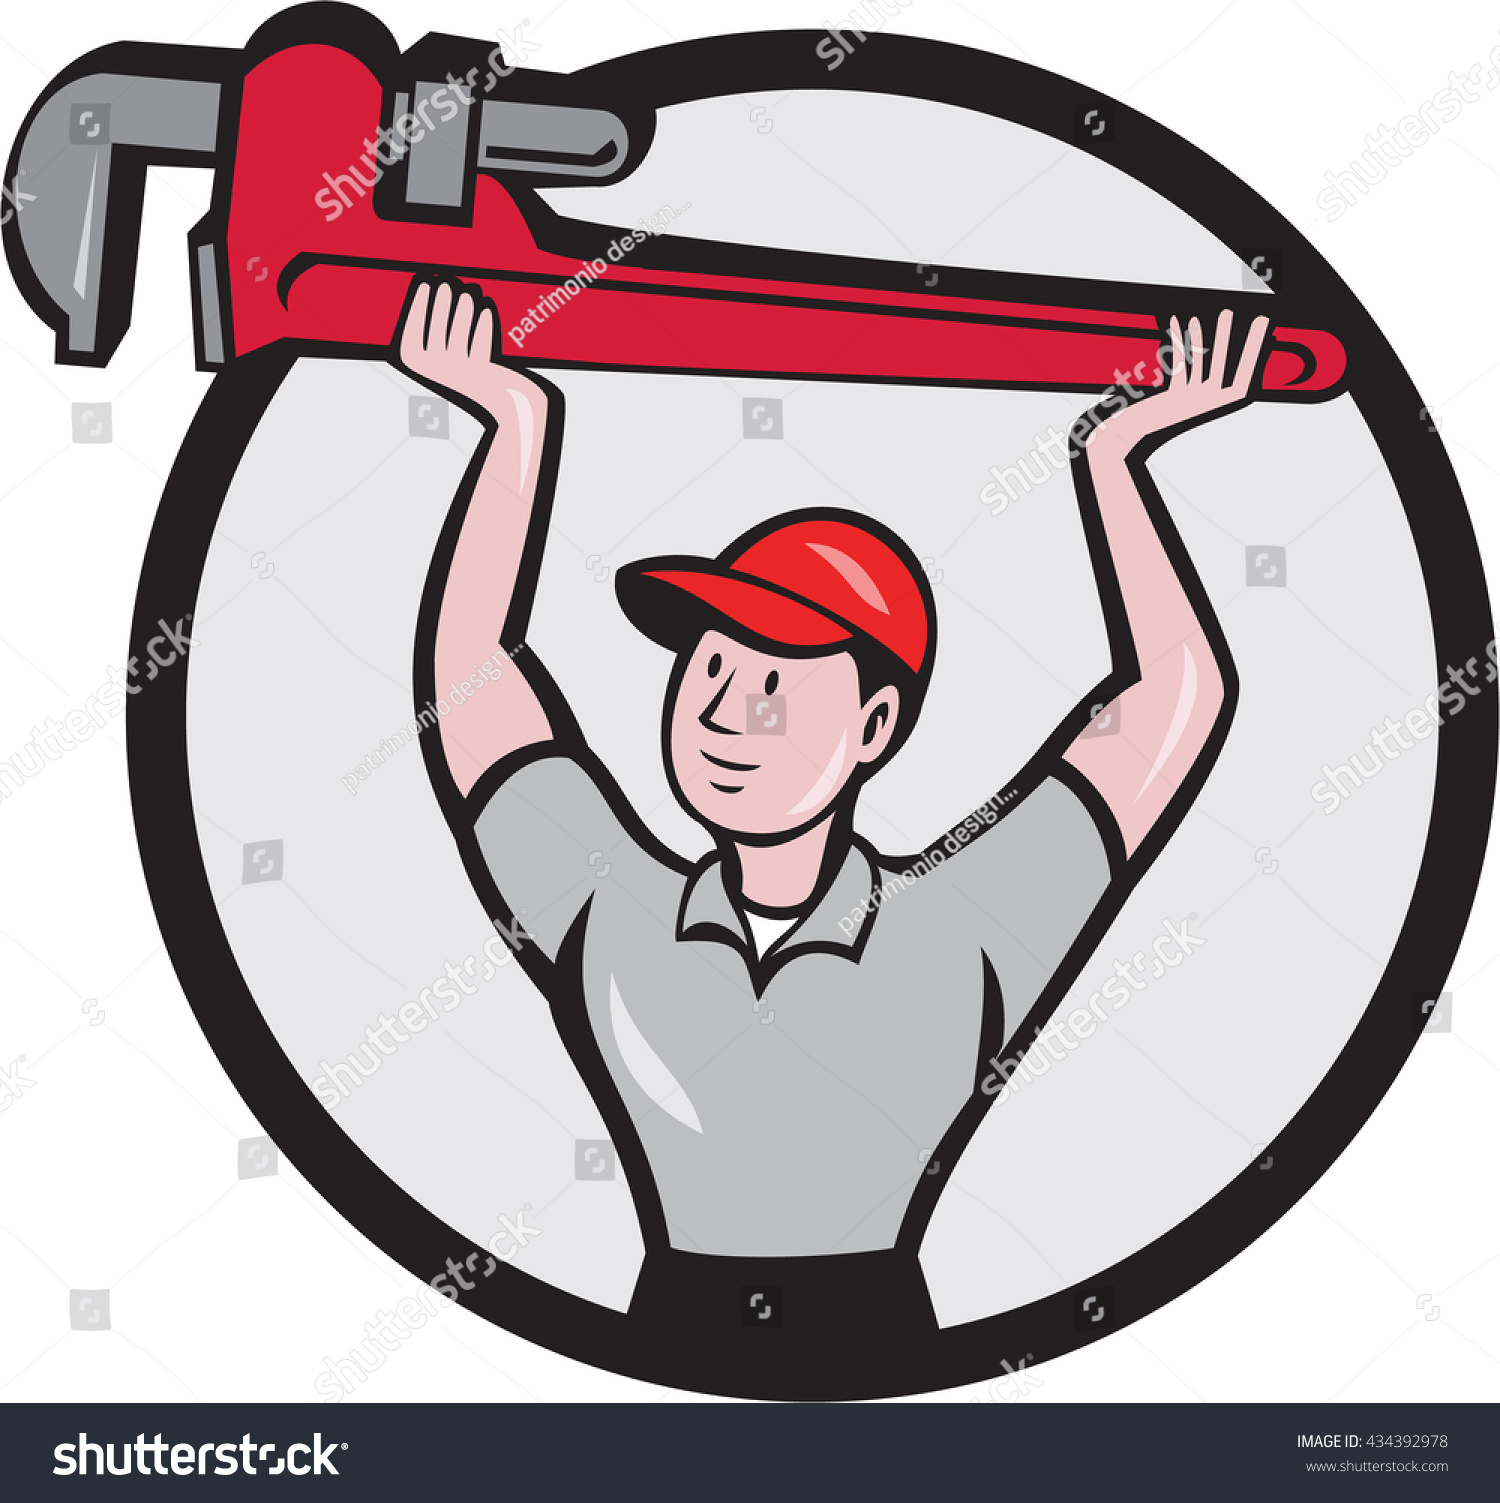 Illustration of a plumber lifting giant monkey wrench over head looking to the side viewed from front set inside circle on isolated background done in cartoon style